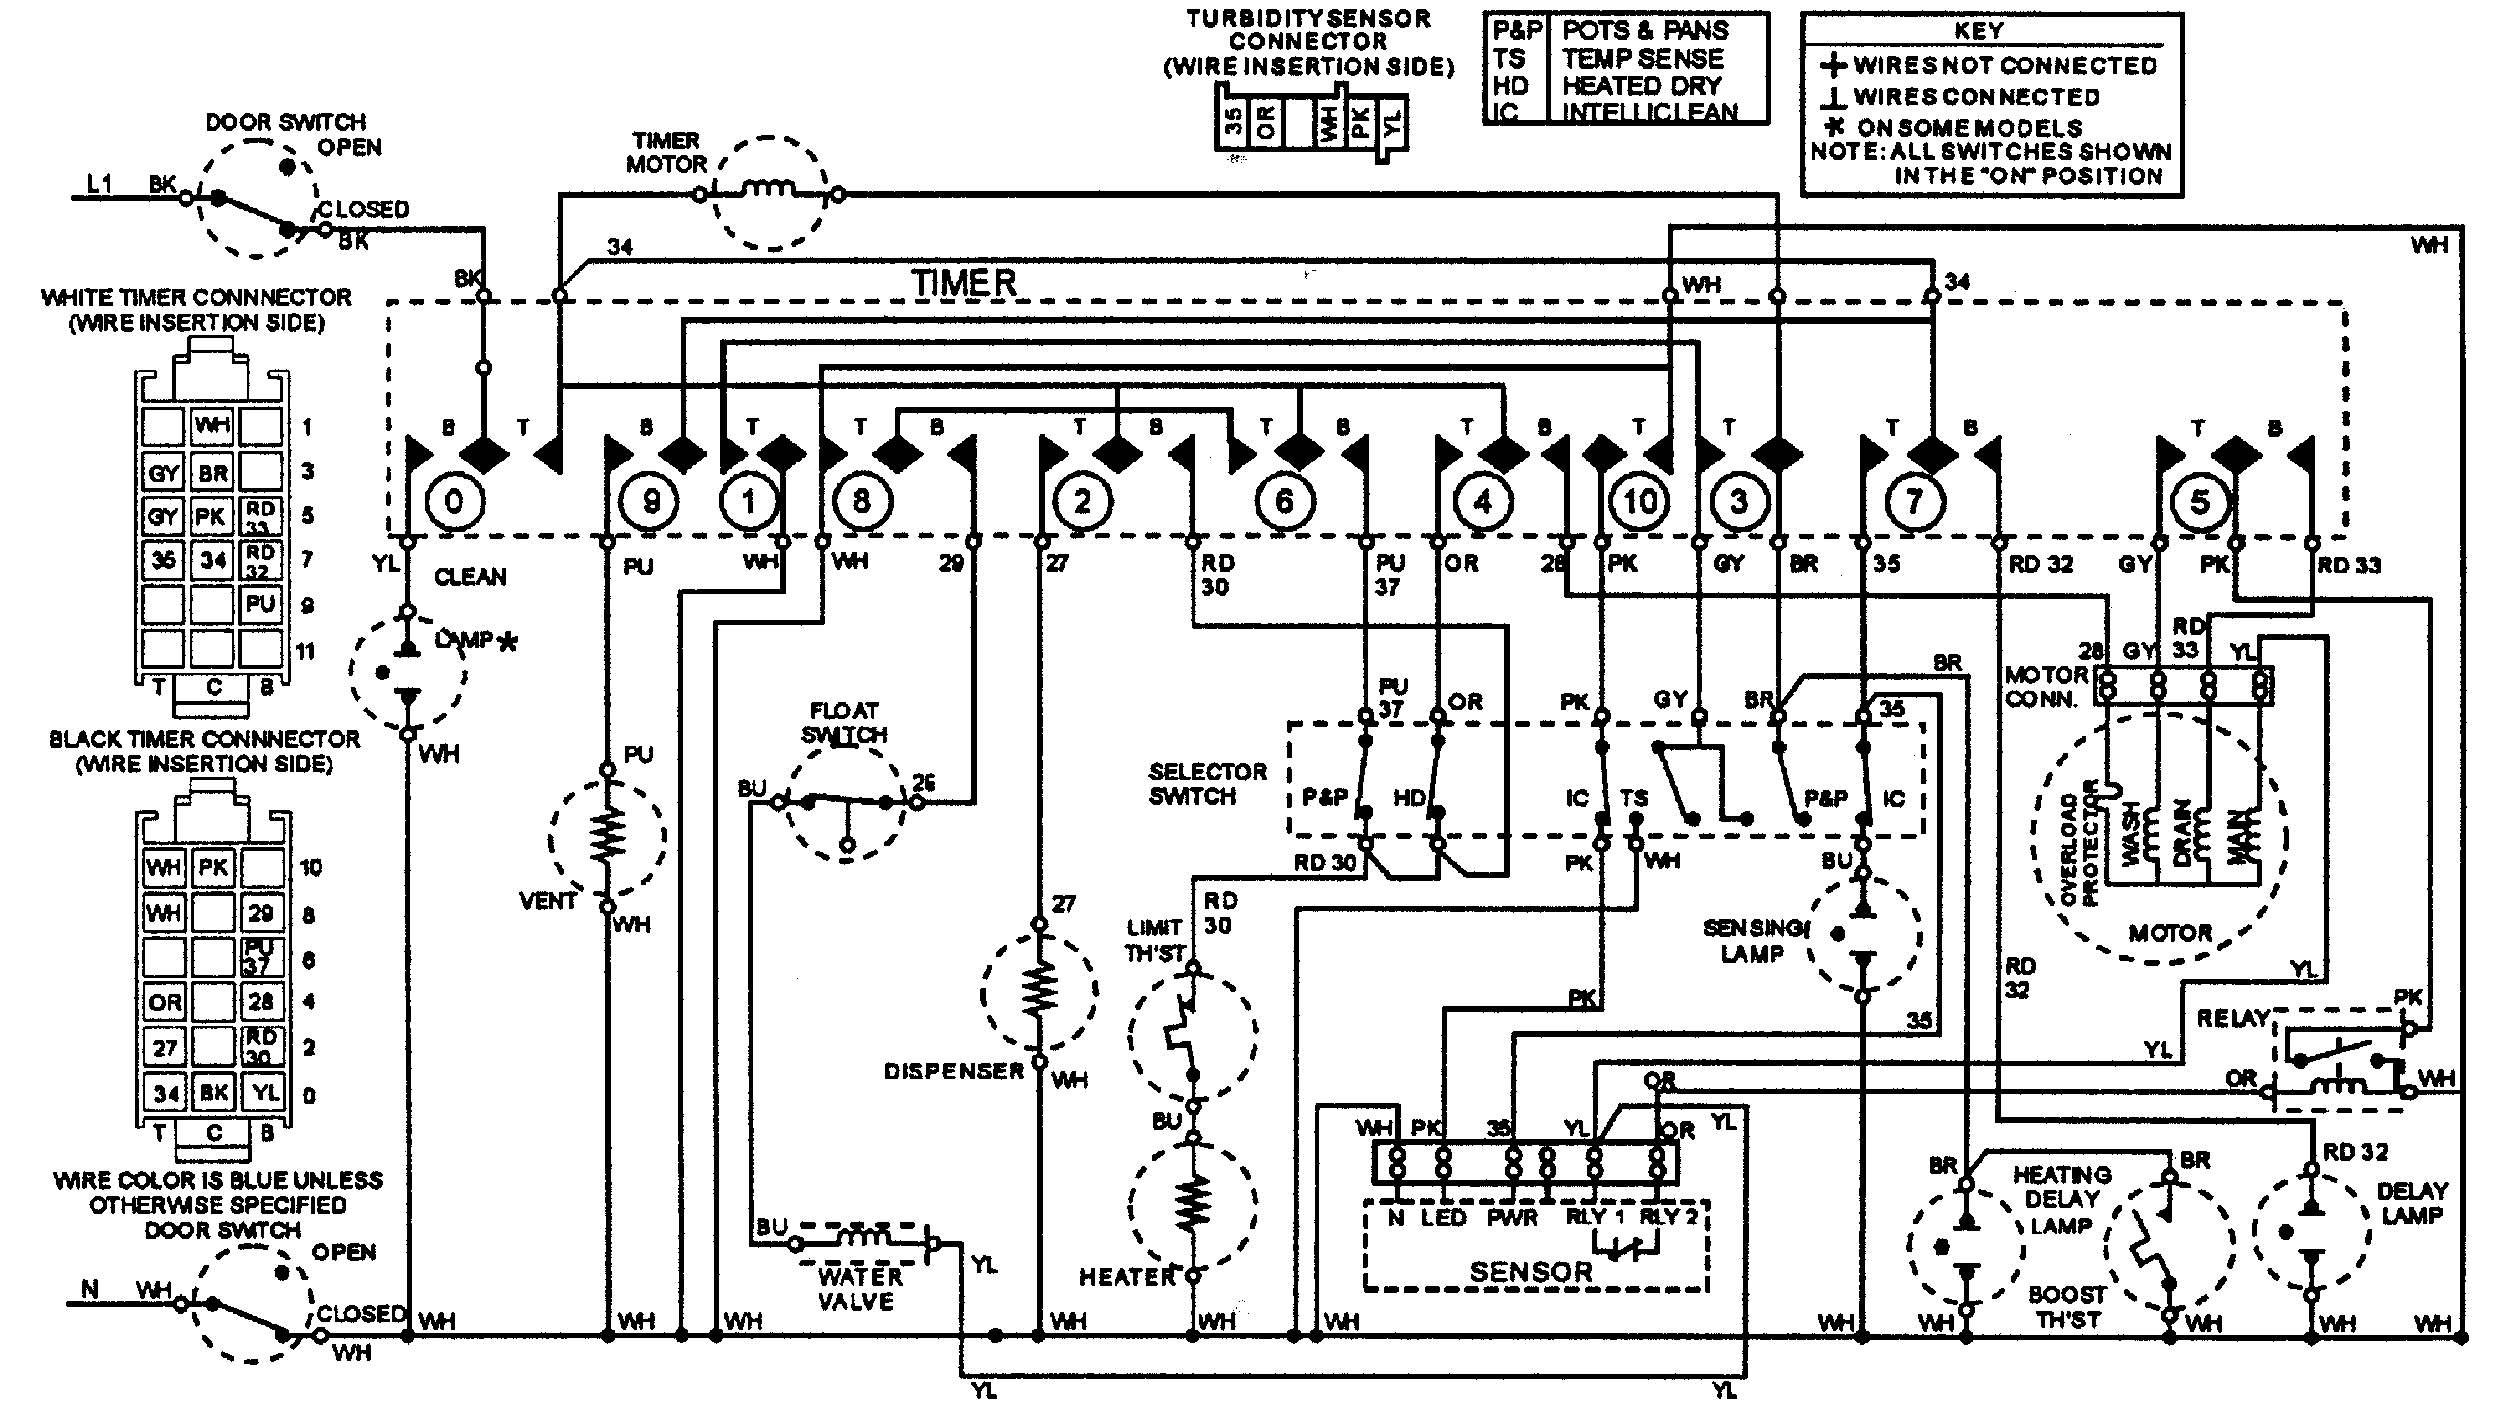 Whirlpool Dishwasher Wiring Diagram Best Secret Circuit And Refrigerator Troubleshooting Schematics Get Free Model Numbers Search